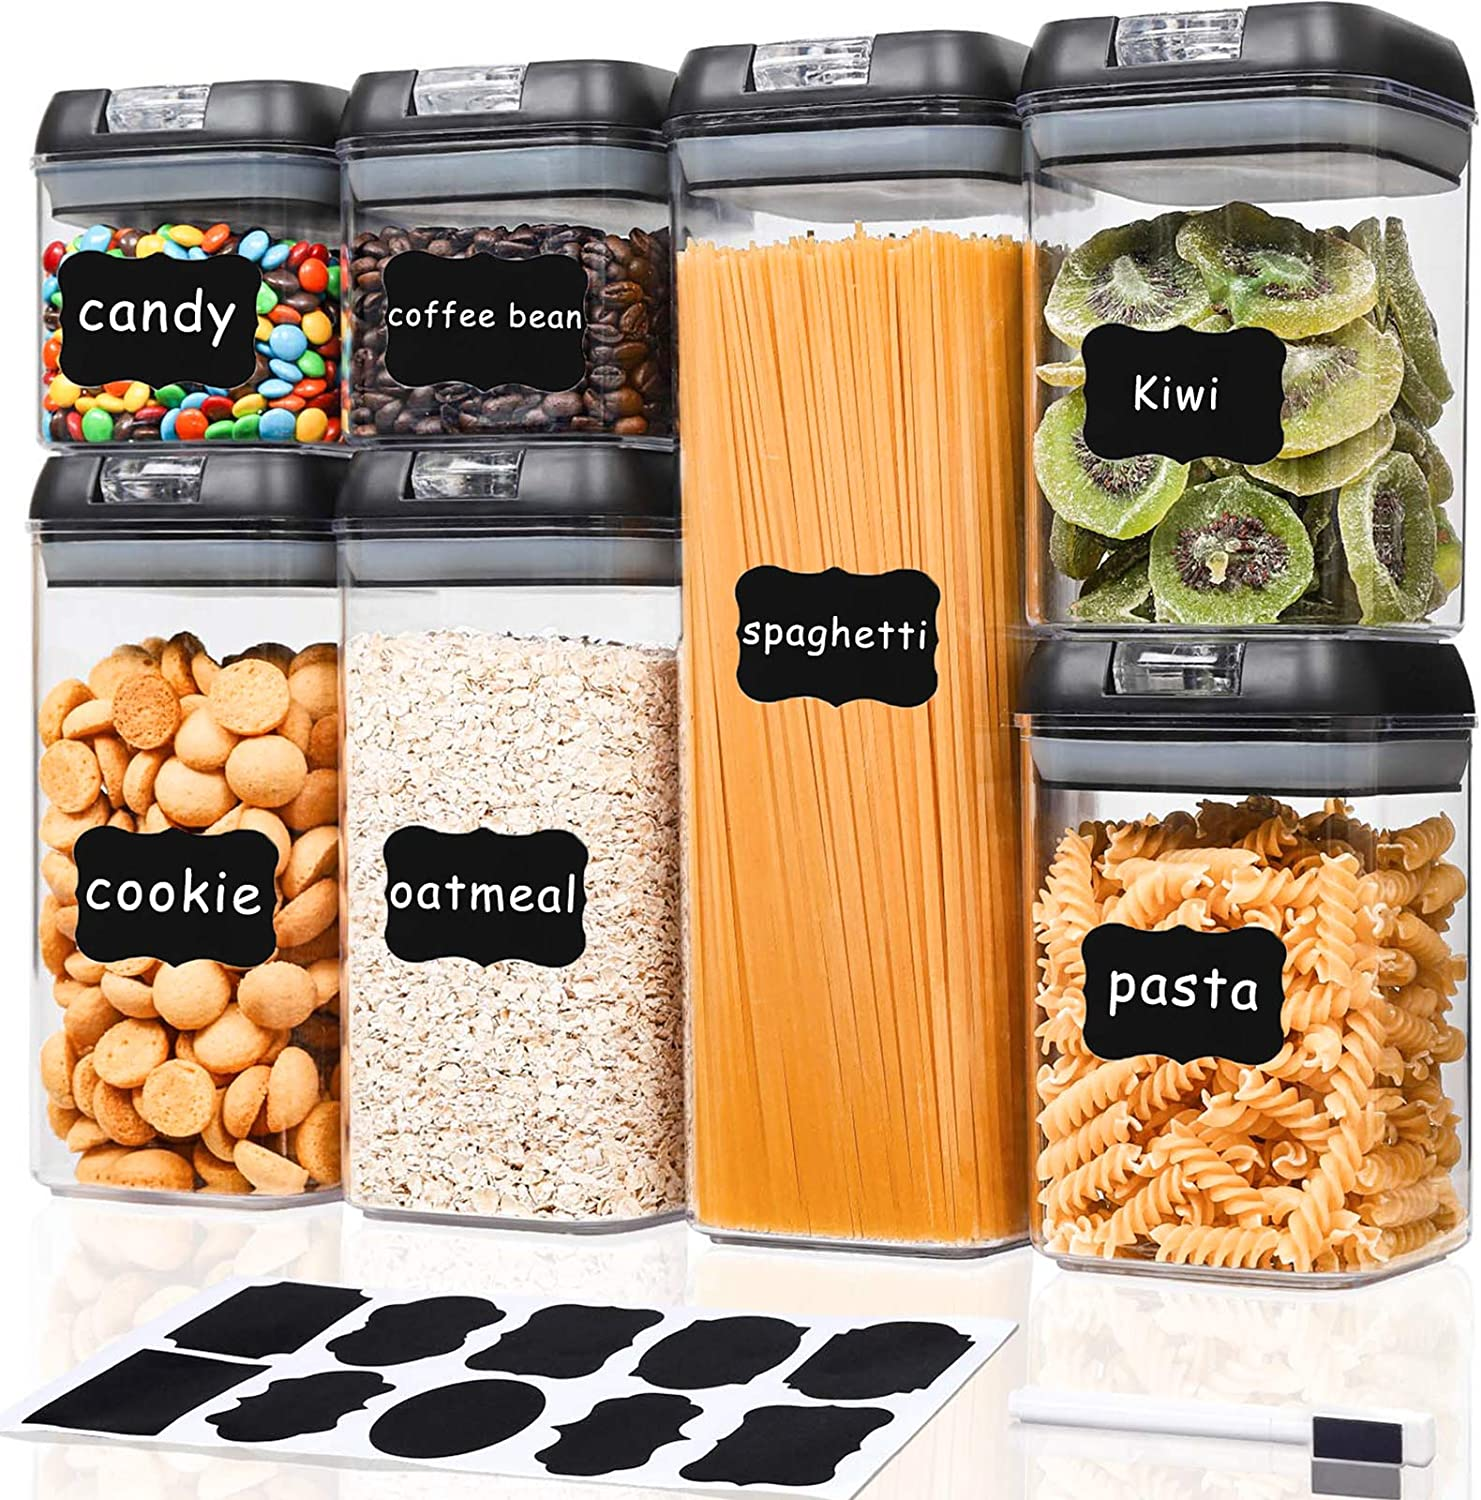 TIANGR Airtight Food Storage Containers Set 7Pcs - BPA Free Plastic Cereal & Dry Food Canister With Easy Lock Lids - Kitchen Pantry Storage for Snacks,Spaghetti,Bean - Include Labels & Marker